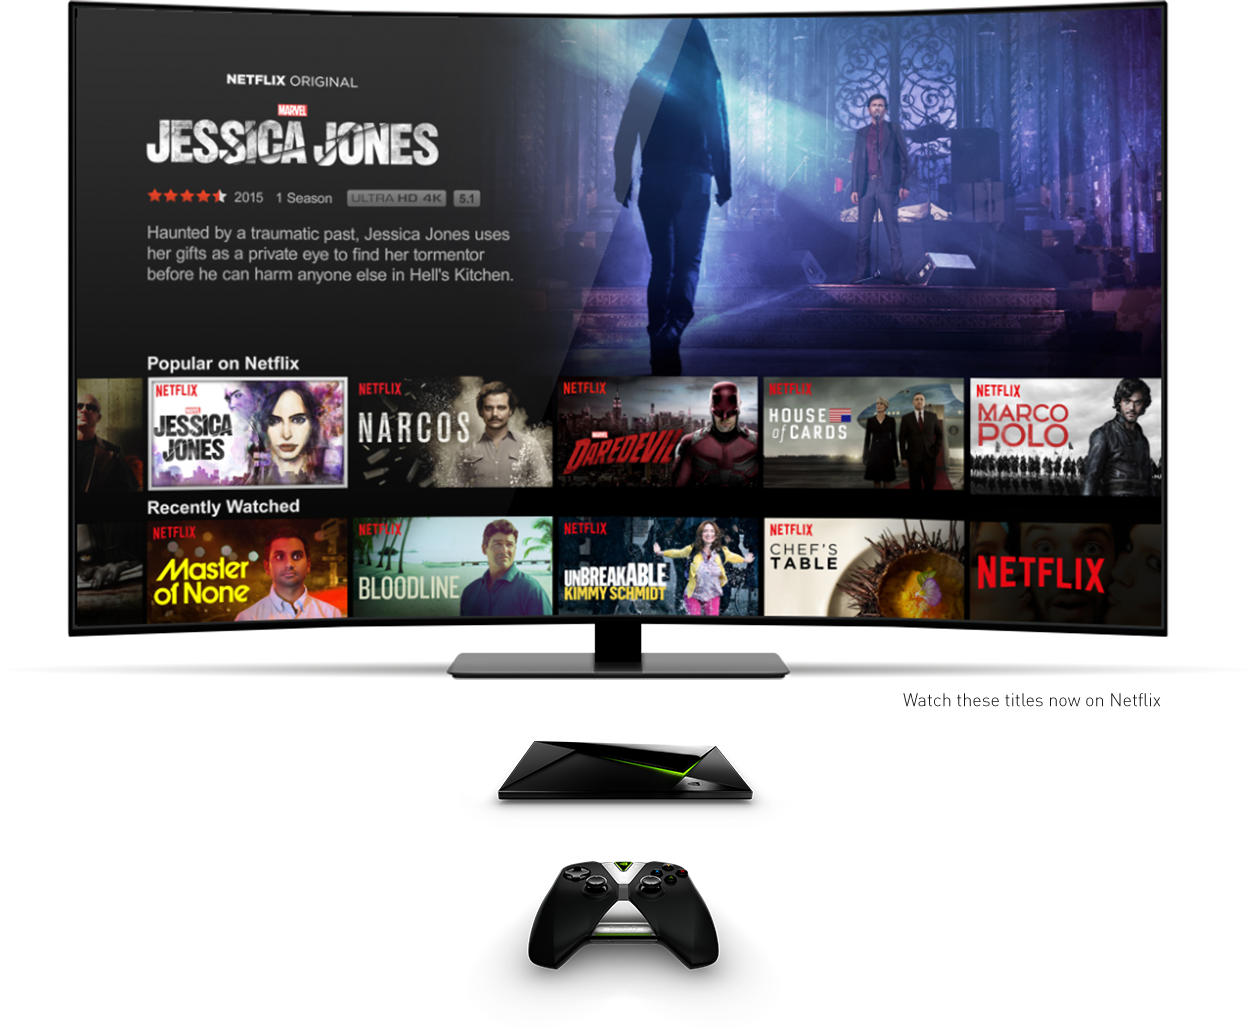 Netflix 4K and HDR is available on the NVIDIA Shield Android TV - PHOTOGRAPH COURTESY OF NVIDIA